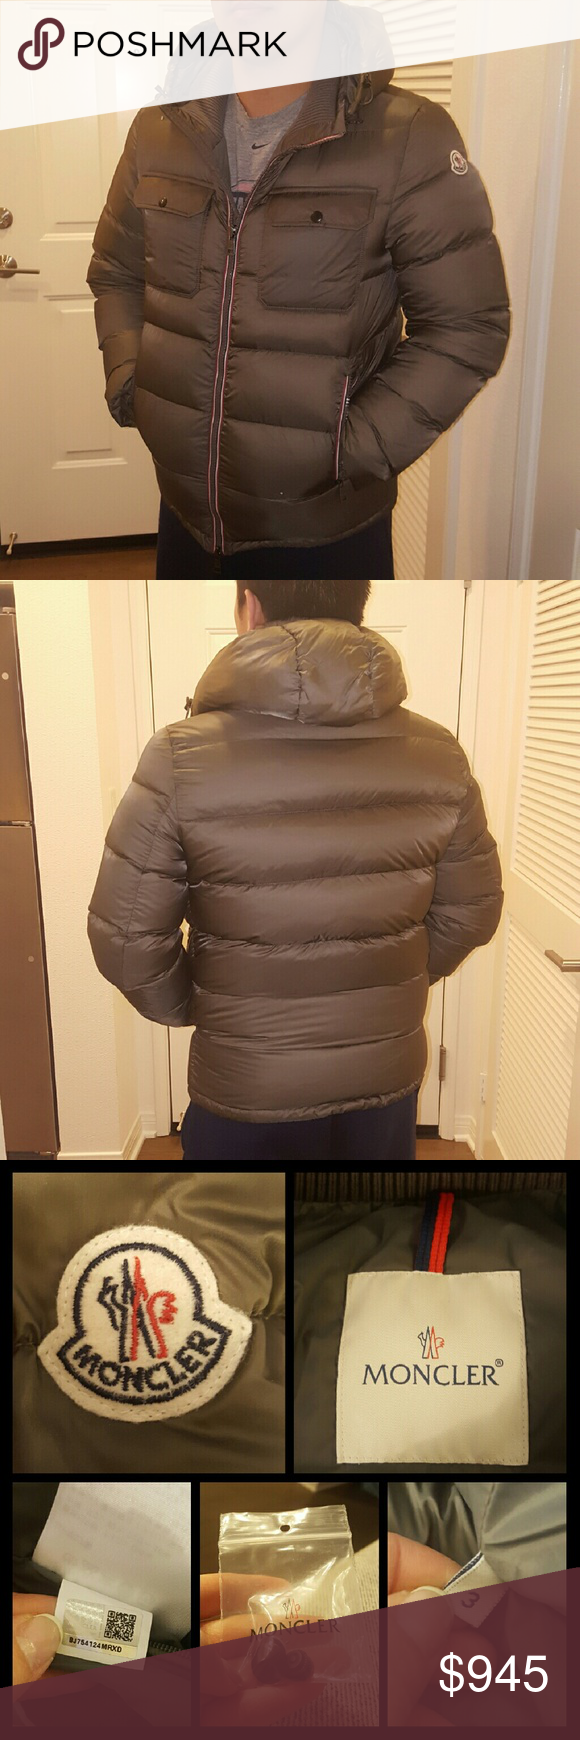 43889e945733 Authentic Moncler Down Jacket